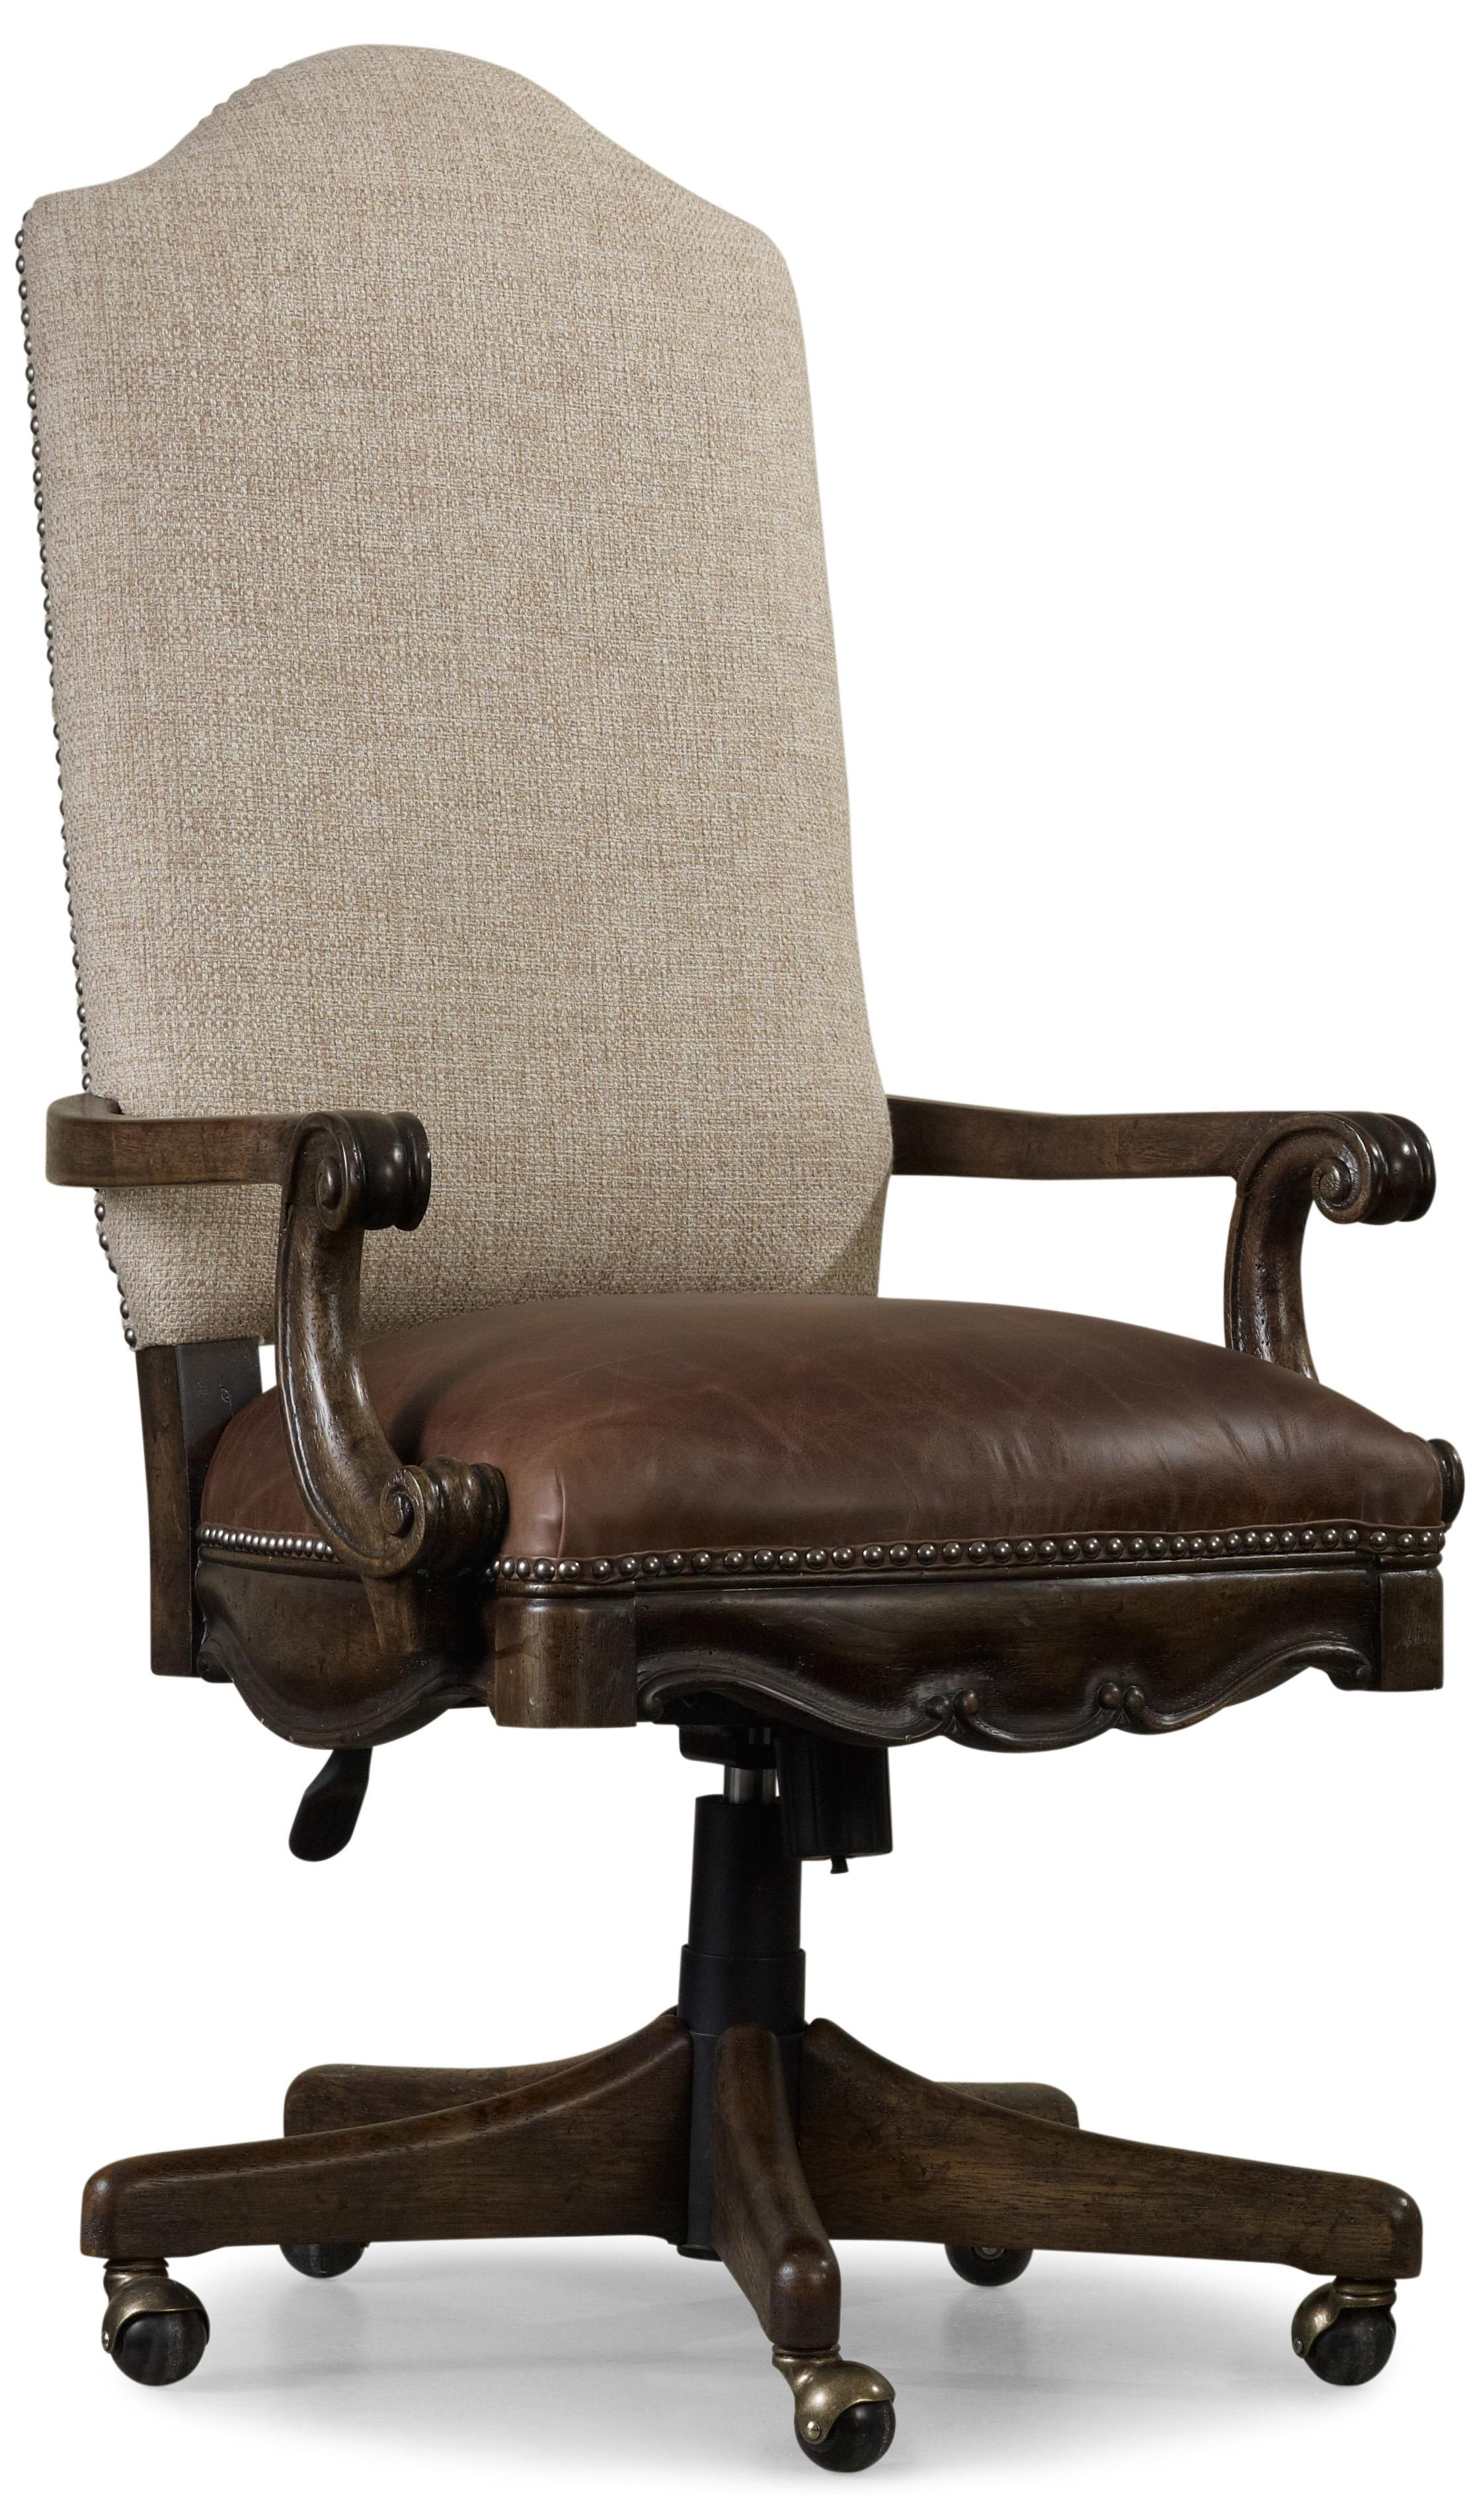 swivel chair jargon swing for toddlers hamilton home rhapsody tilt with leather seat